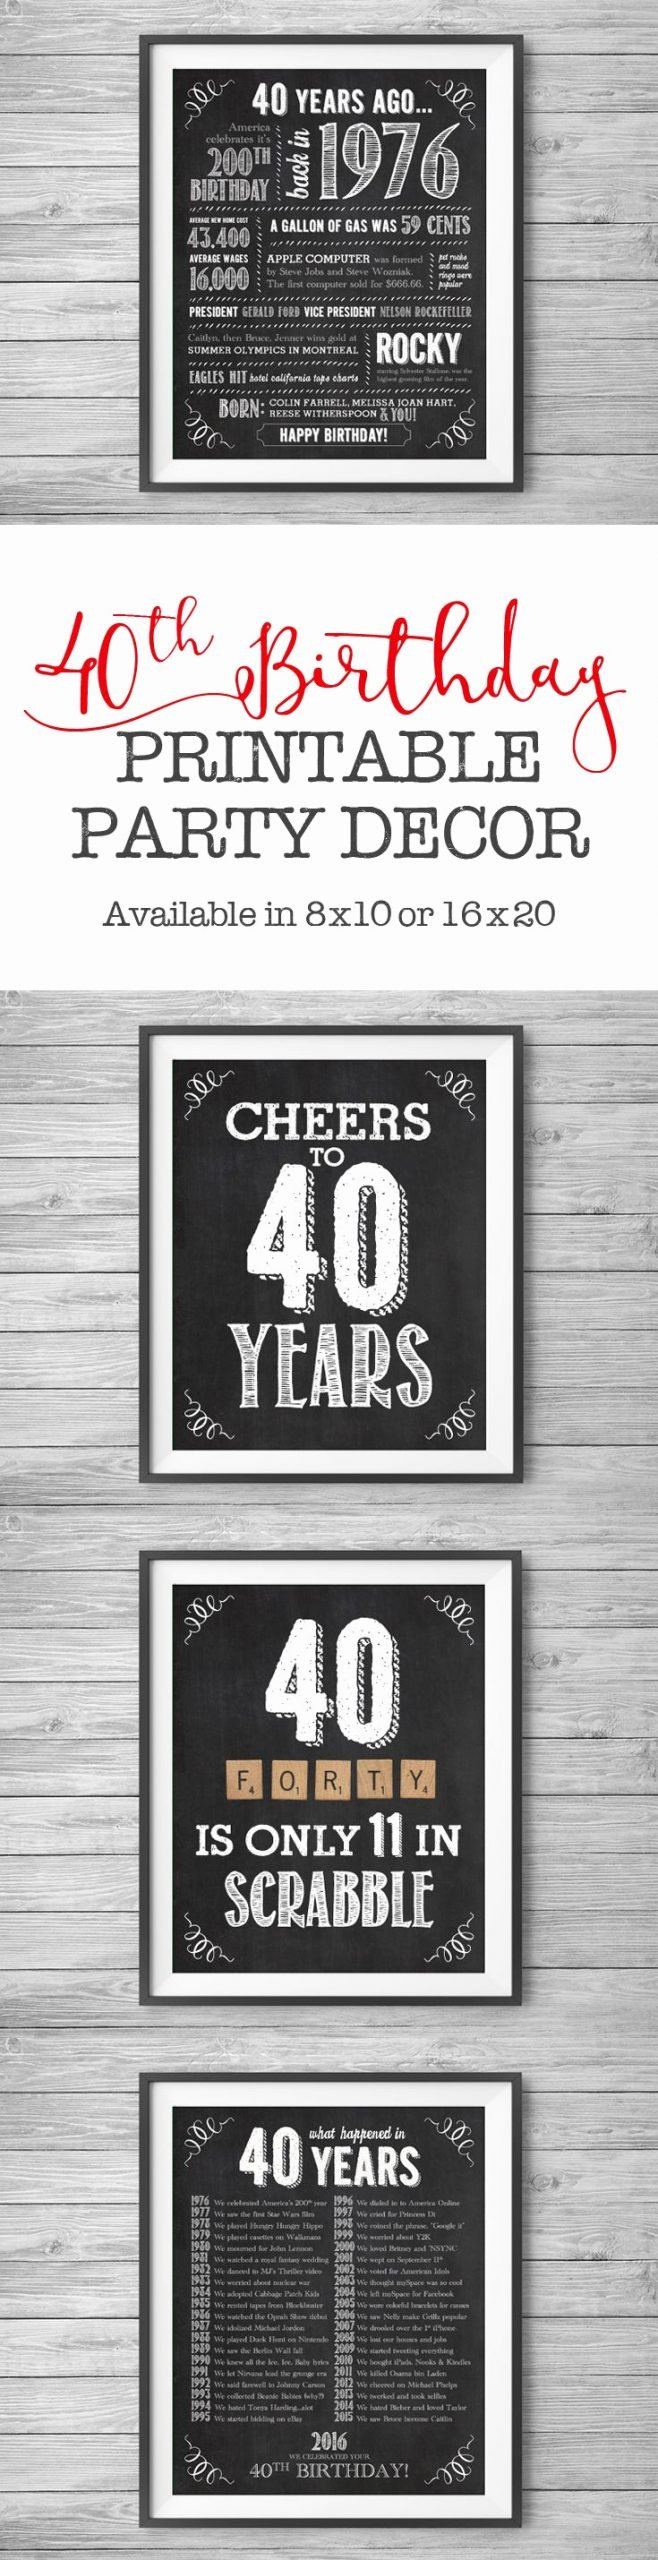 Diy 40th Birthday Decoration Ideas Fresh 40th Birthday Printable Party Decor Supplies 4 Unique 8x10